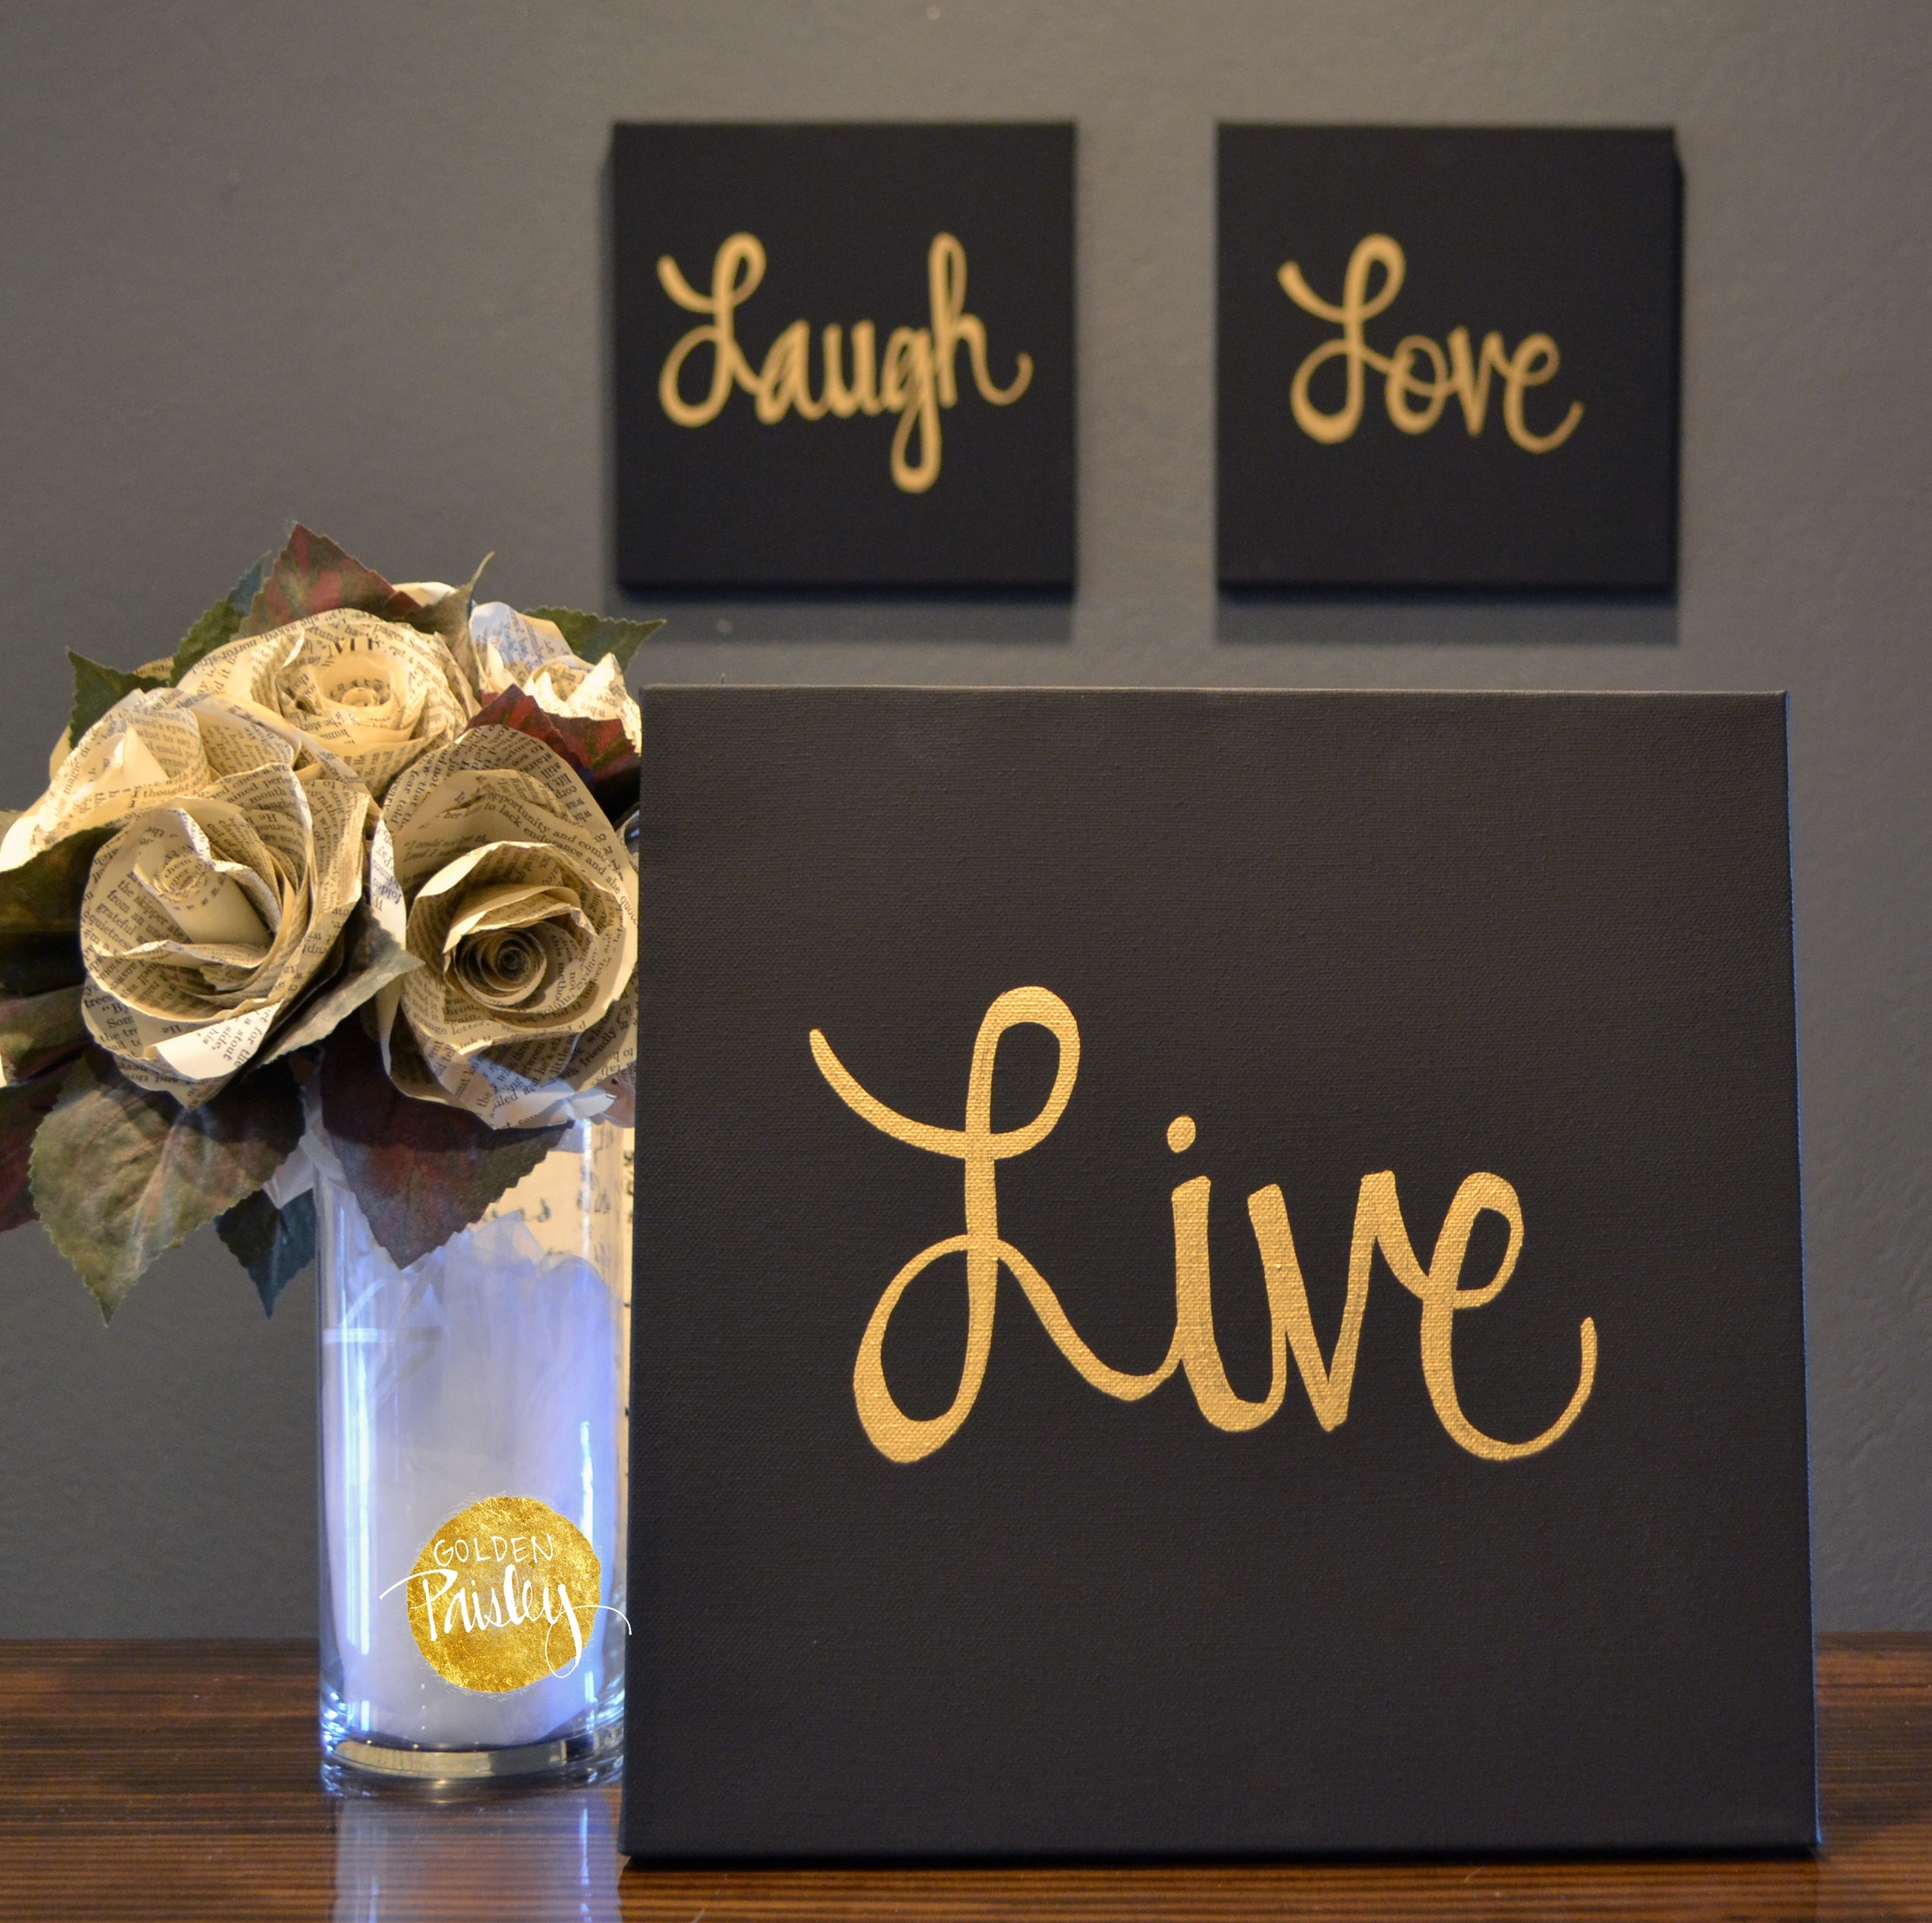 Live Laugh Love Black & Gold 3 Piece Wall Decor Set Regarding Newest Black And Gold Wall Art (View 17 of 20)